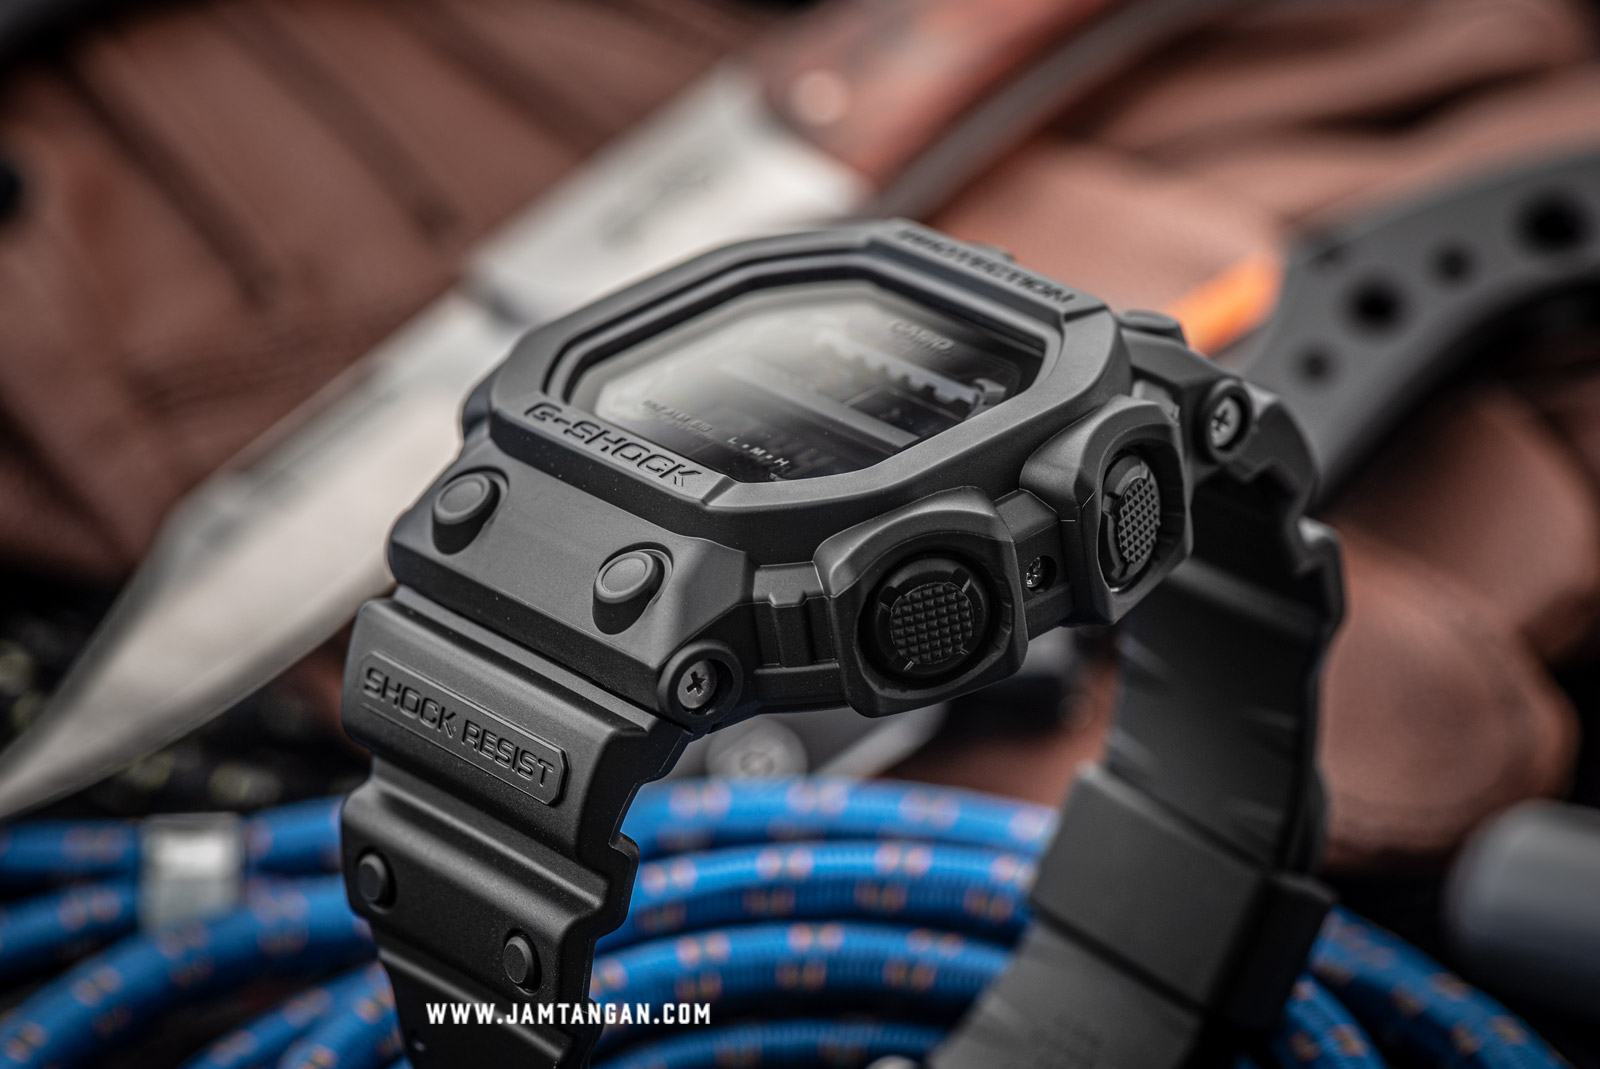 Casio G-Shock GX-56BB-1DR Solar Powered Water Resistant 200M Black Resin Band Machtwatch